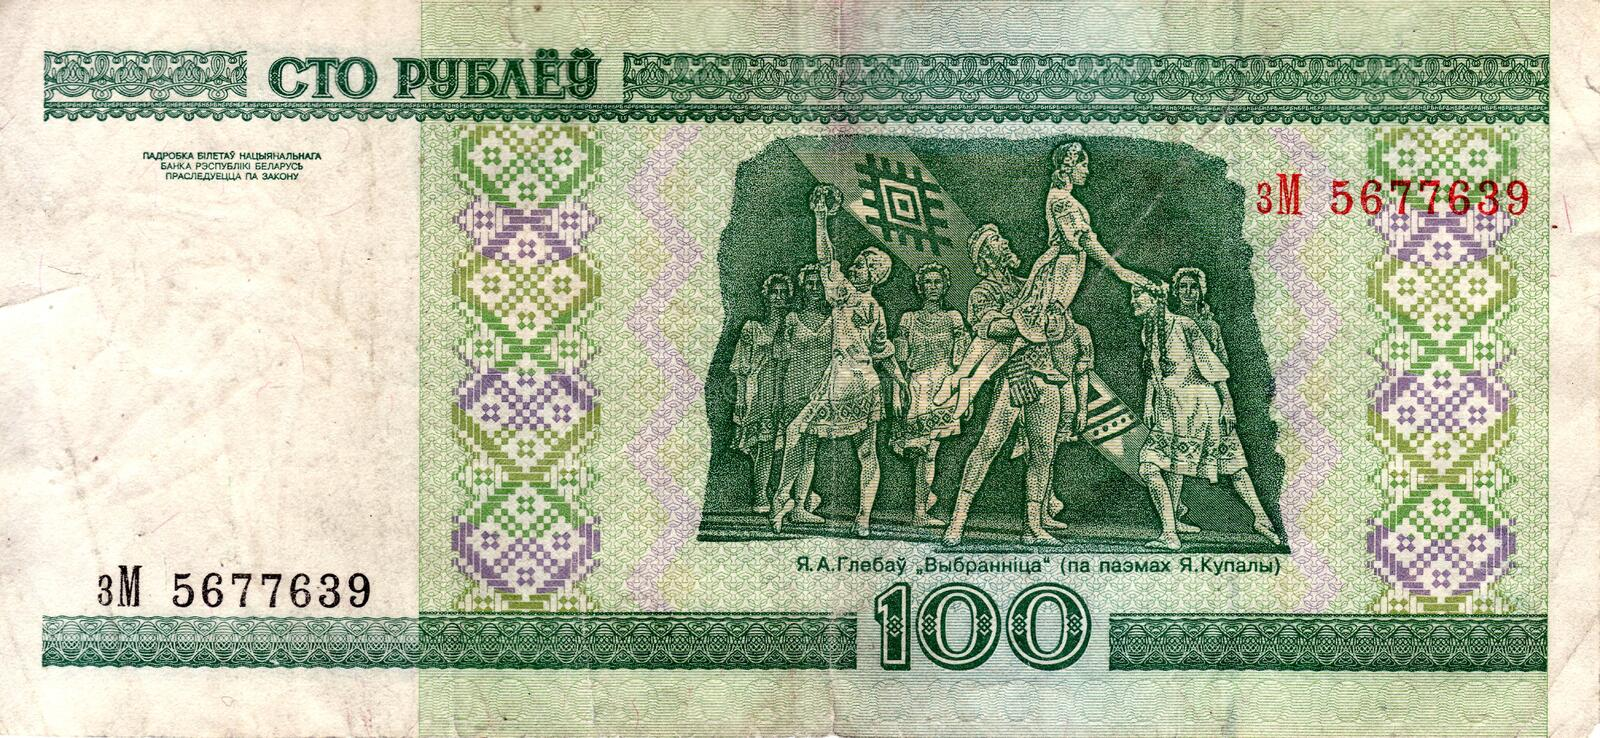 Banknote 100 rubles 1992 Belarus stock images